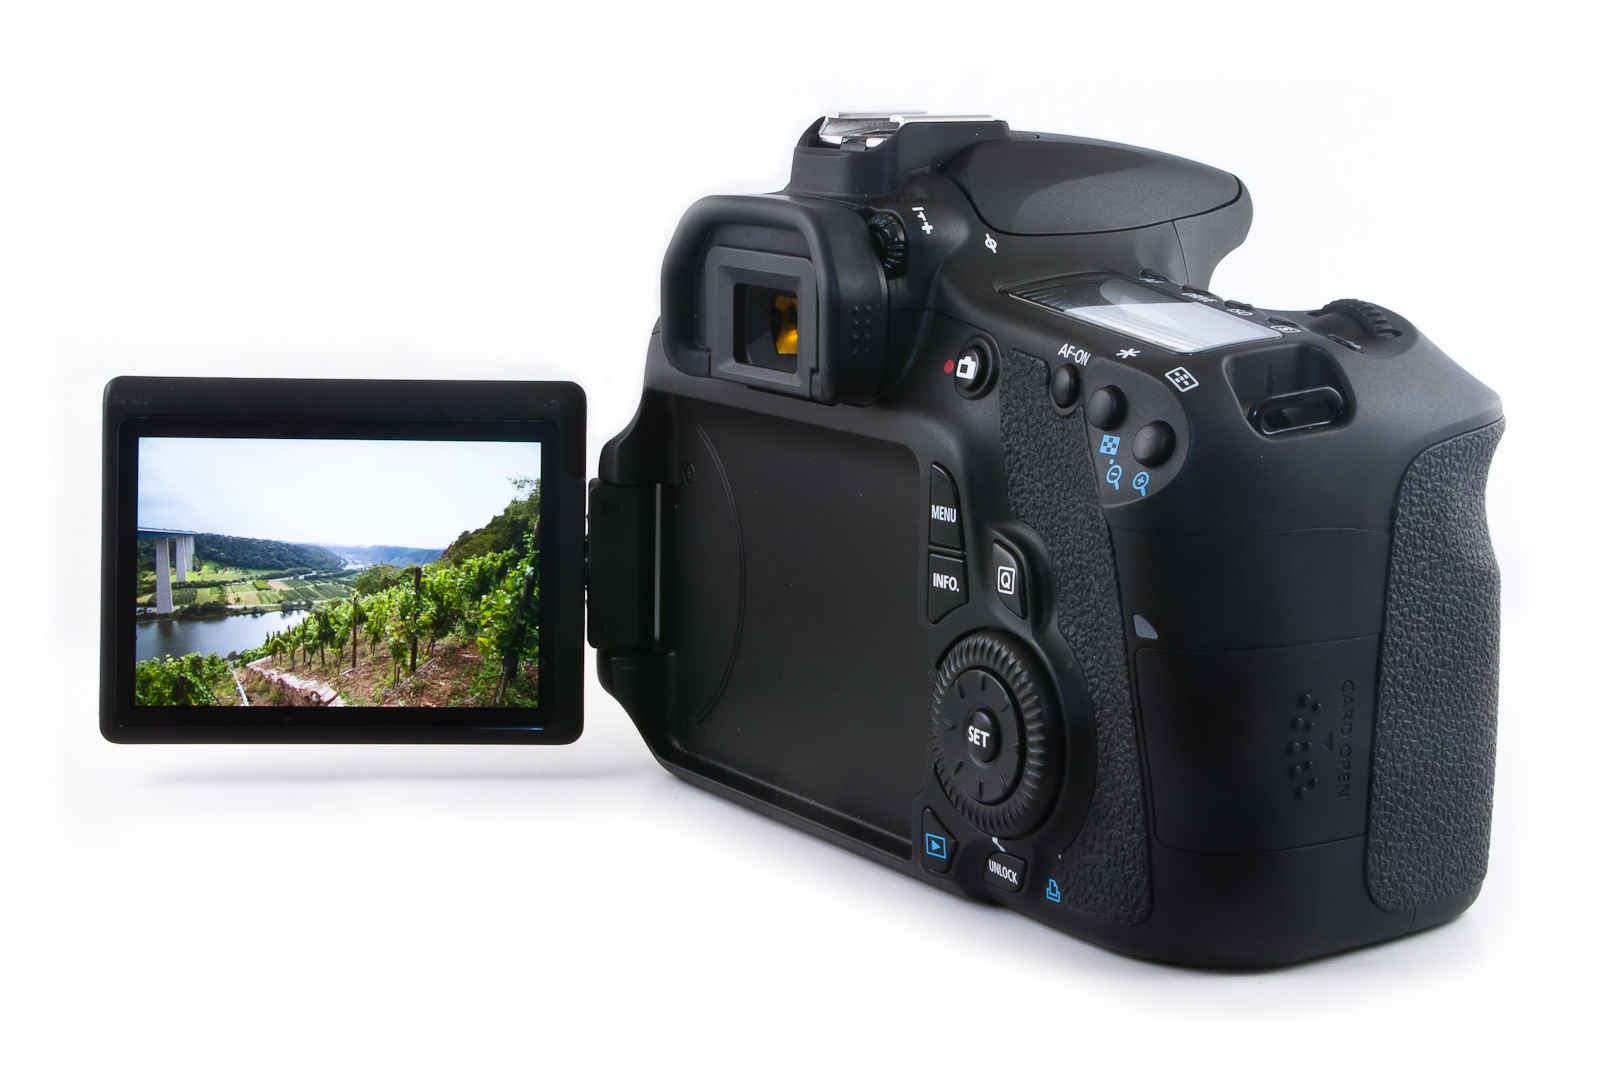 canon eos 60d with 18 55mm lens price in india buy canon eos 60d with 18 55mm lens online at snapdeal